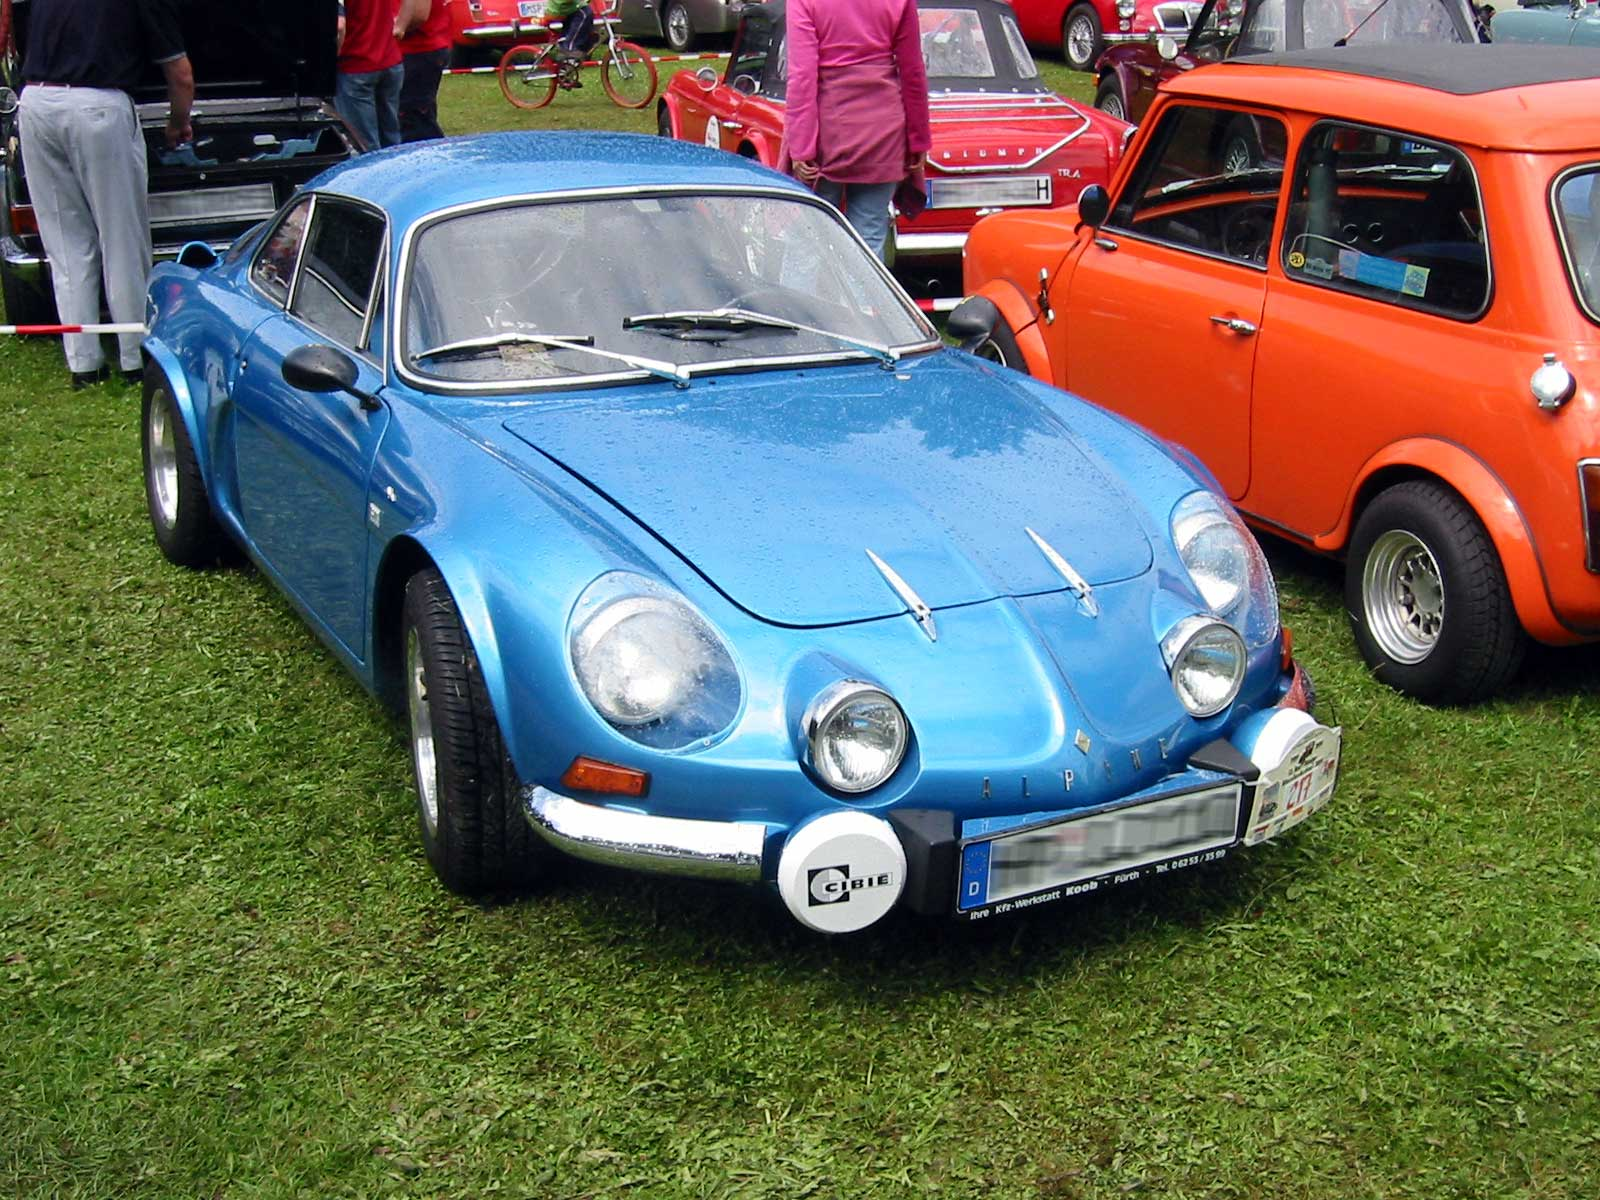 file renault alpine a110 berlinette 1600 wikimedia commons. Black Bedroom Furniture Sets. Home Design Ideas